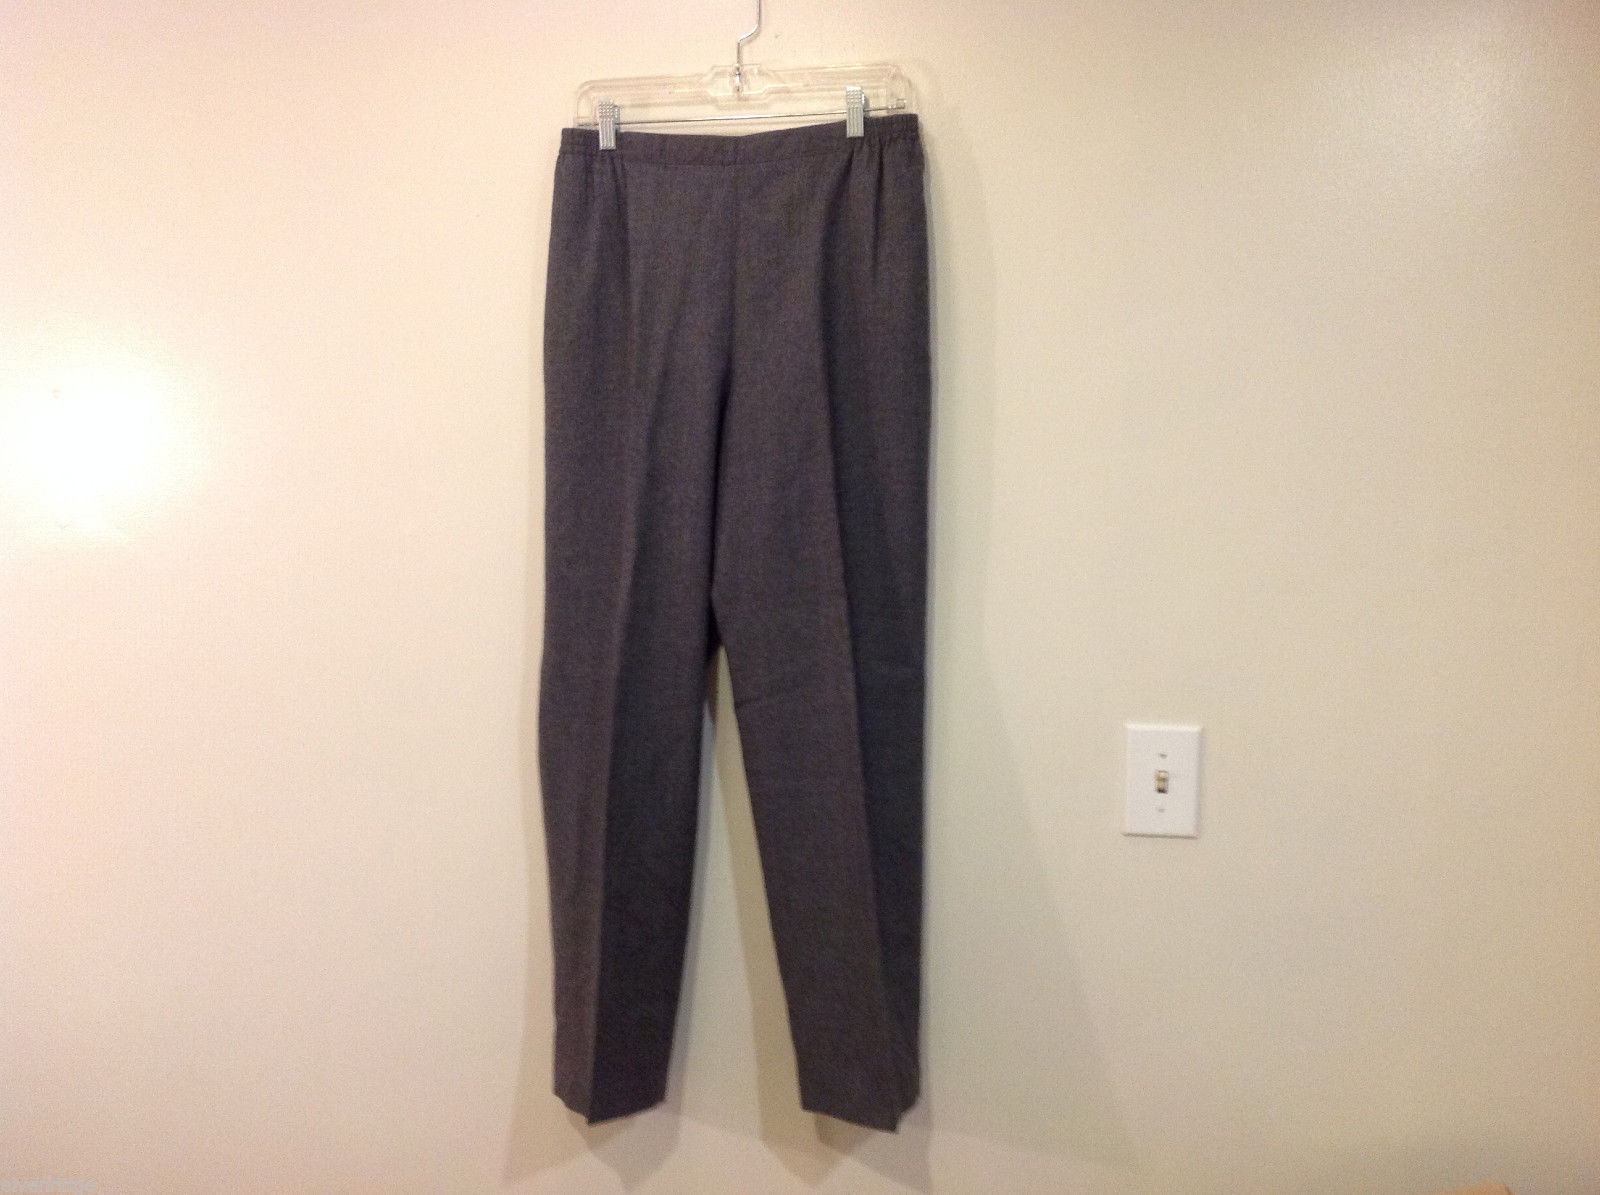 Applesee's Ladies Gray 100% Wool Fully Lined Elastic Back Waist Pants, Size 12